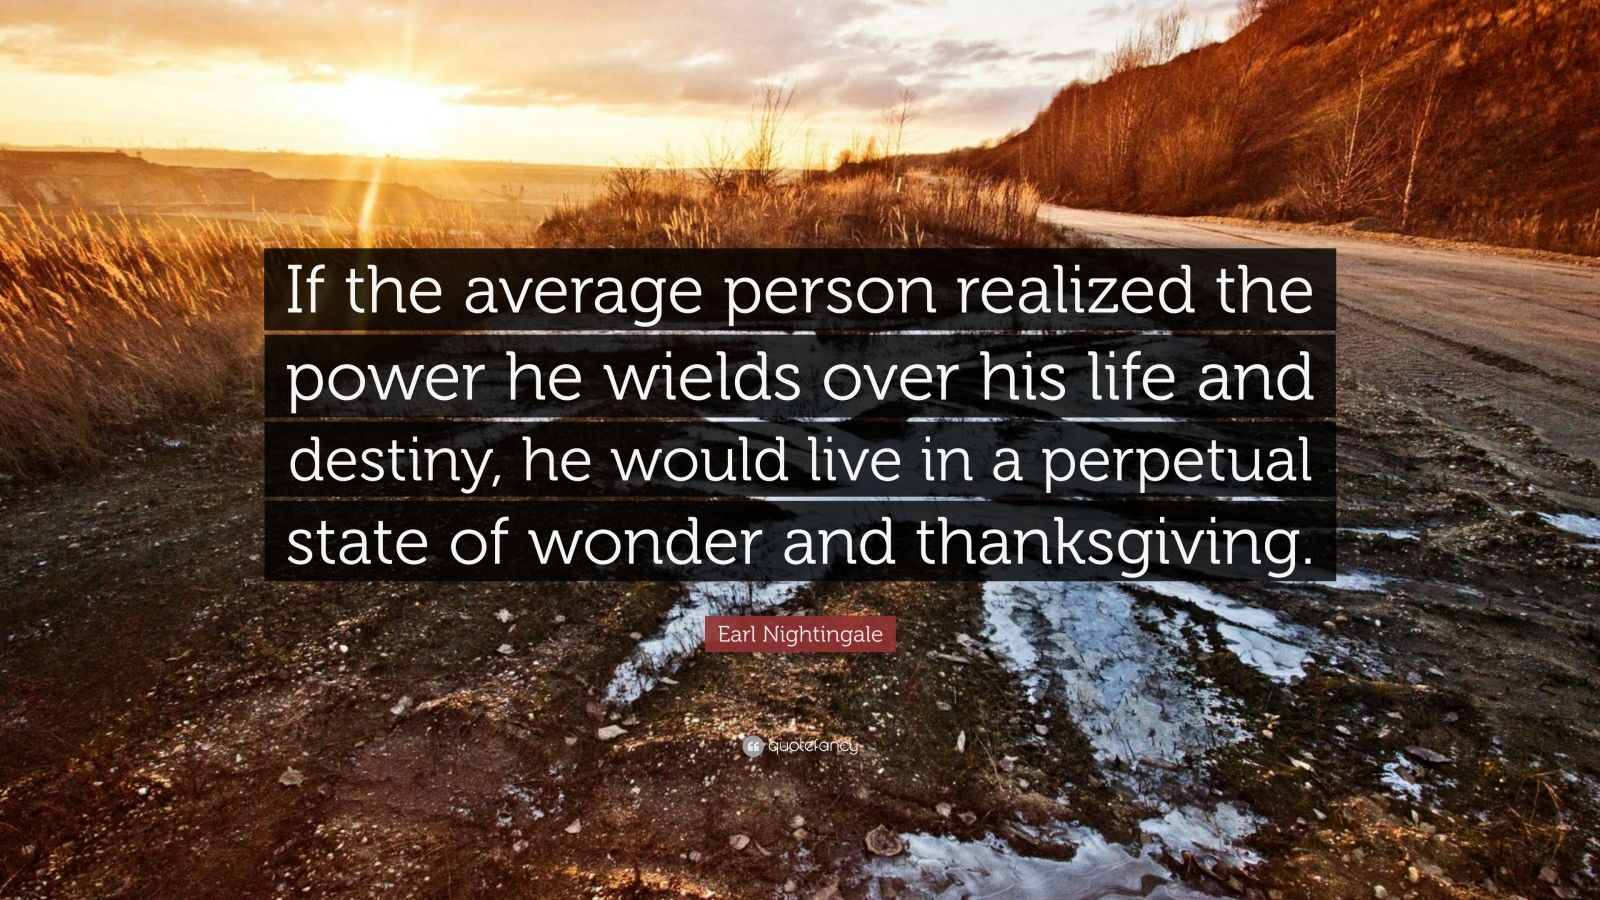 """Earl Nightingale Quote: """"If the average person realized the power he wields over his life and destiny, he would live in a perpetual state of wonder and thanksgiving."""""""